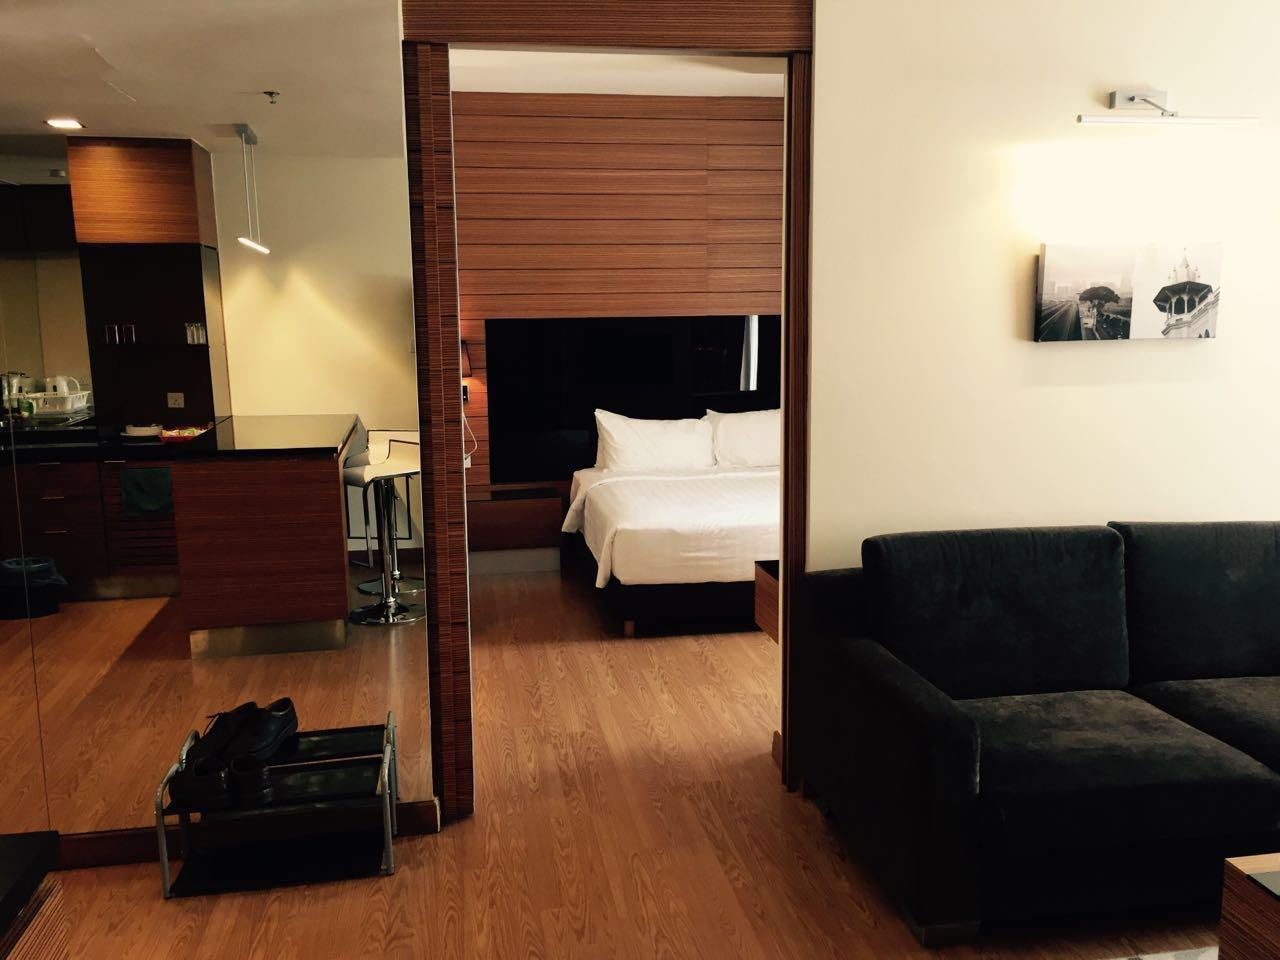 5min 600m From Nu KL Sentral. Up To 6pax